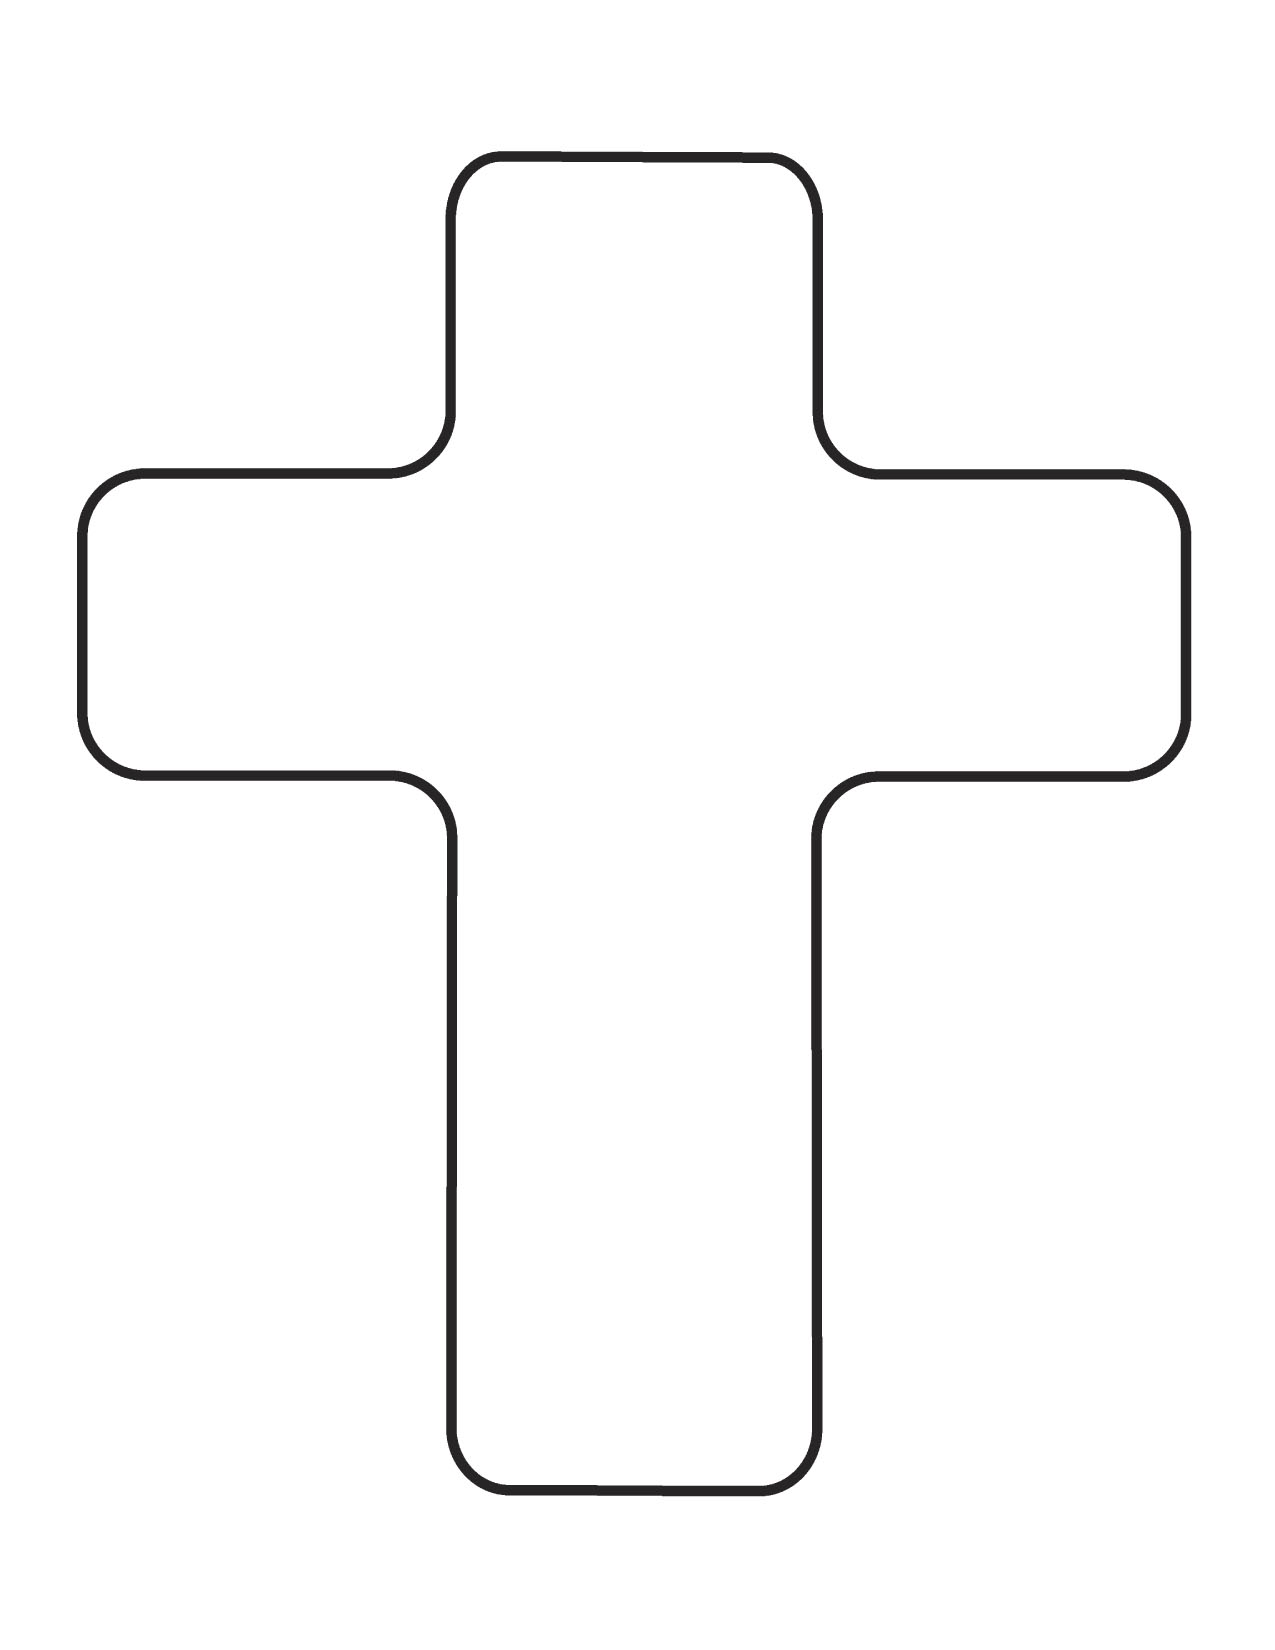 Wide cross clipart jpg black and white download Free Cross Images Free, Download Free Clip Art, Free Clip Art on ... jpg black and white download